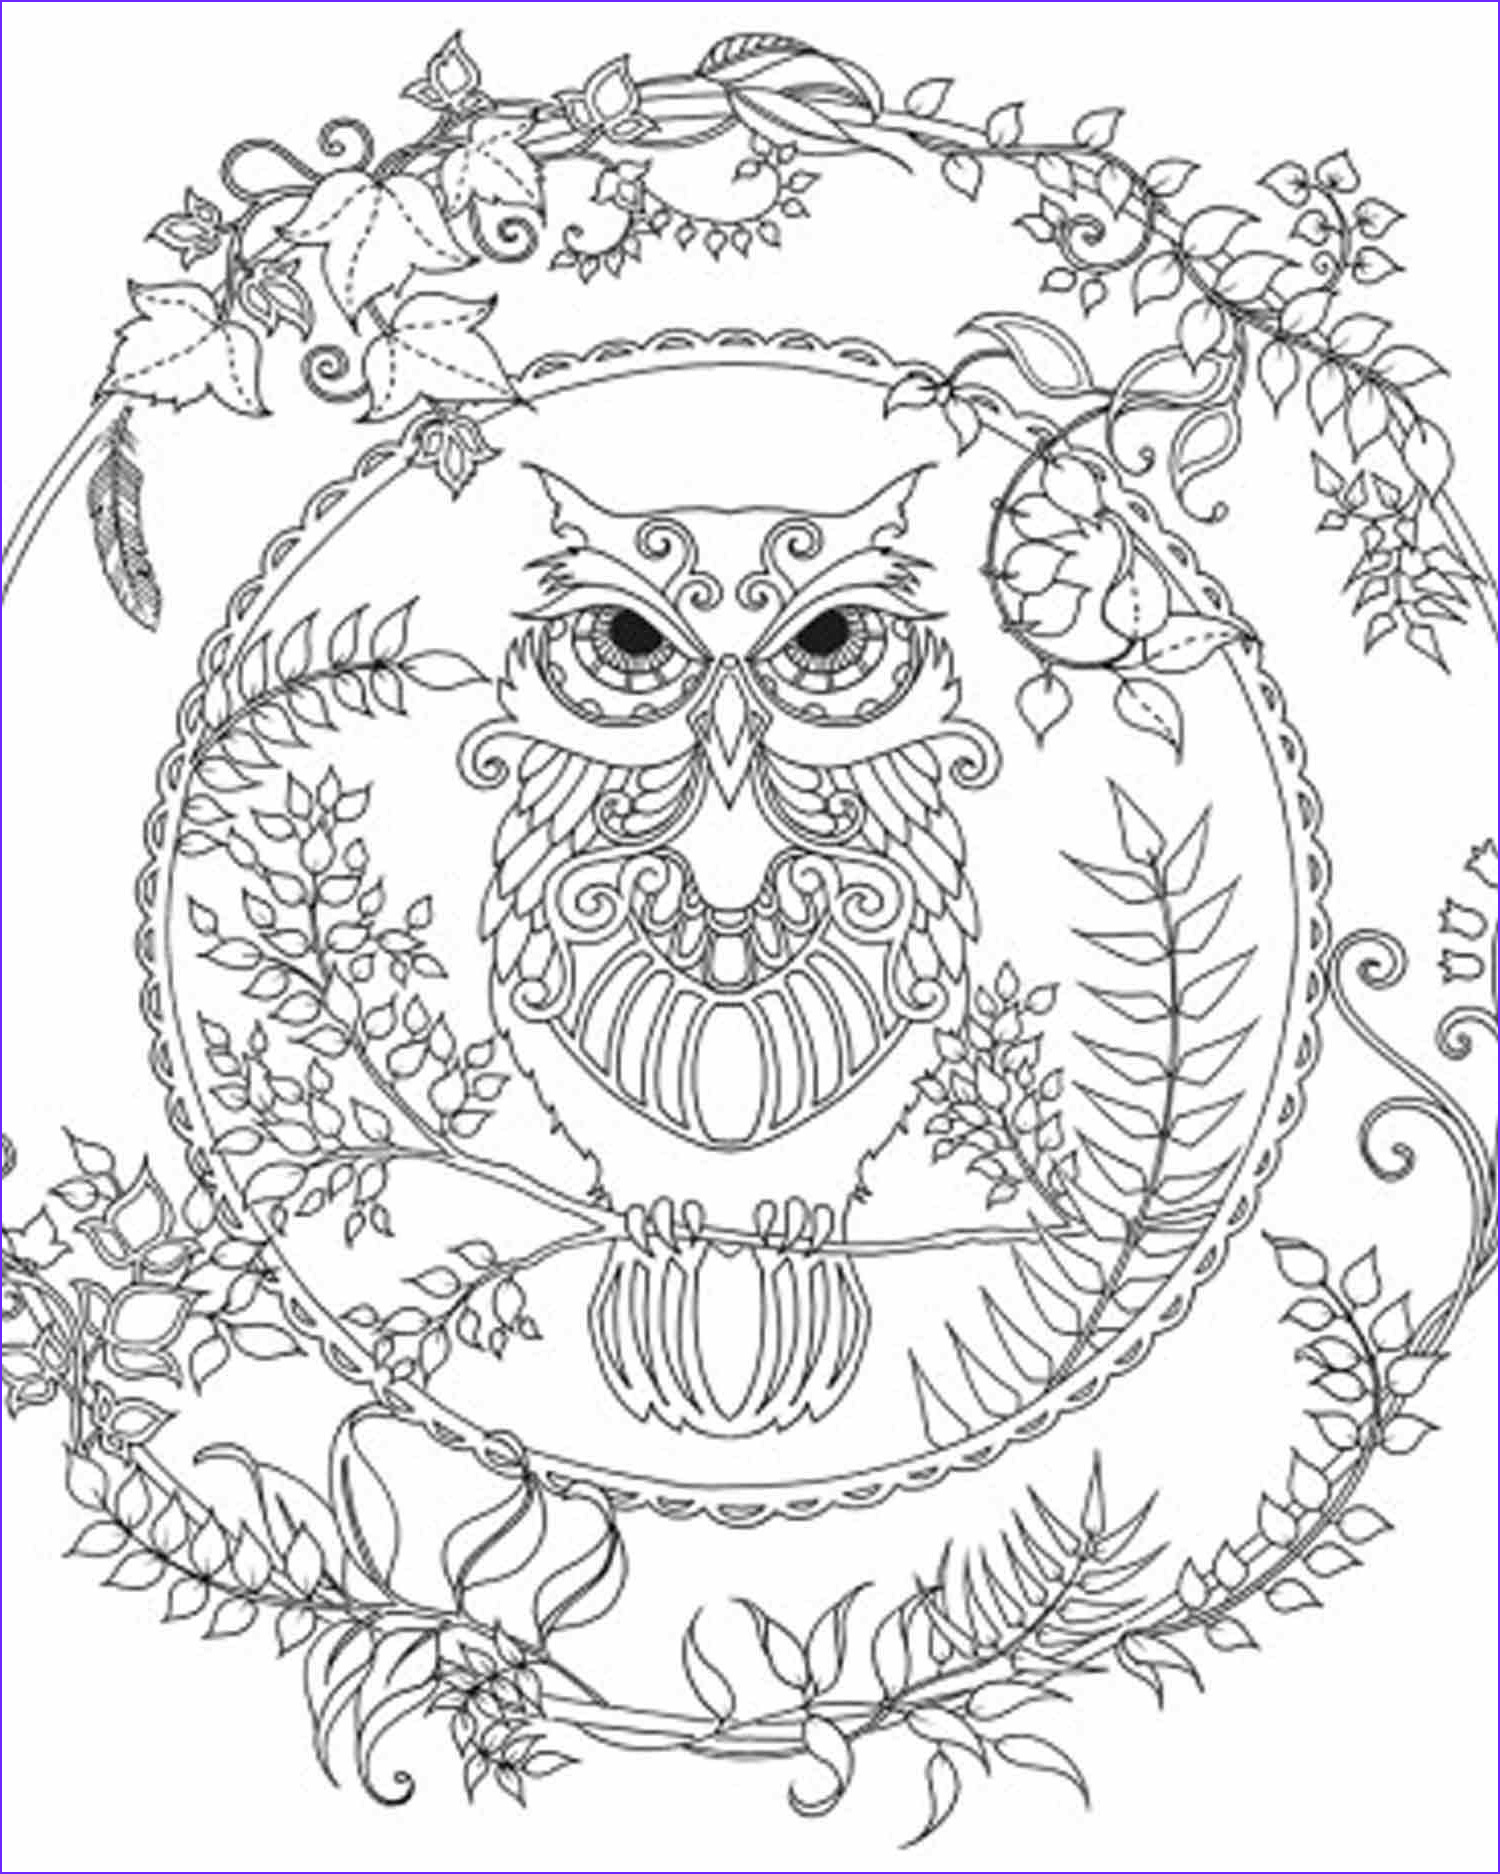 Owl Coloring Books for Adults Awesome Collection Brightbird Free Adult Coloring Pages